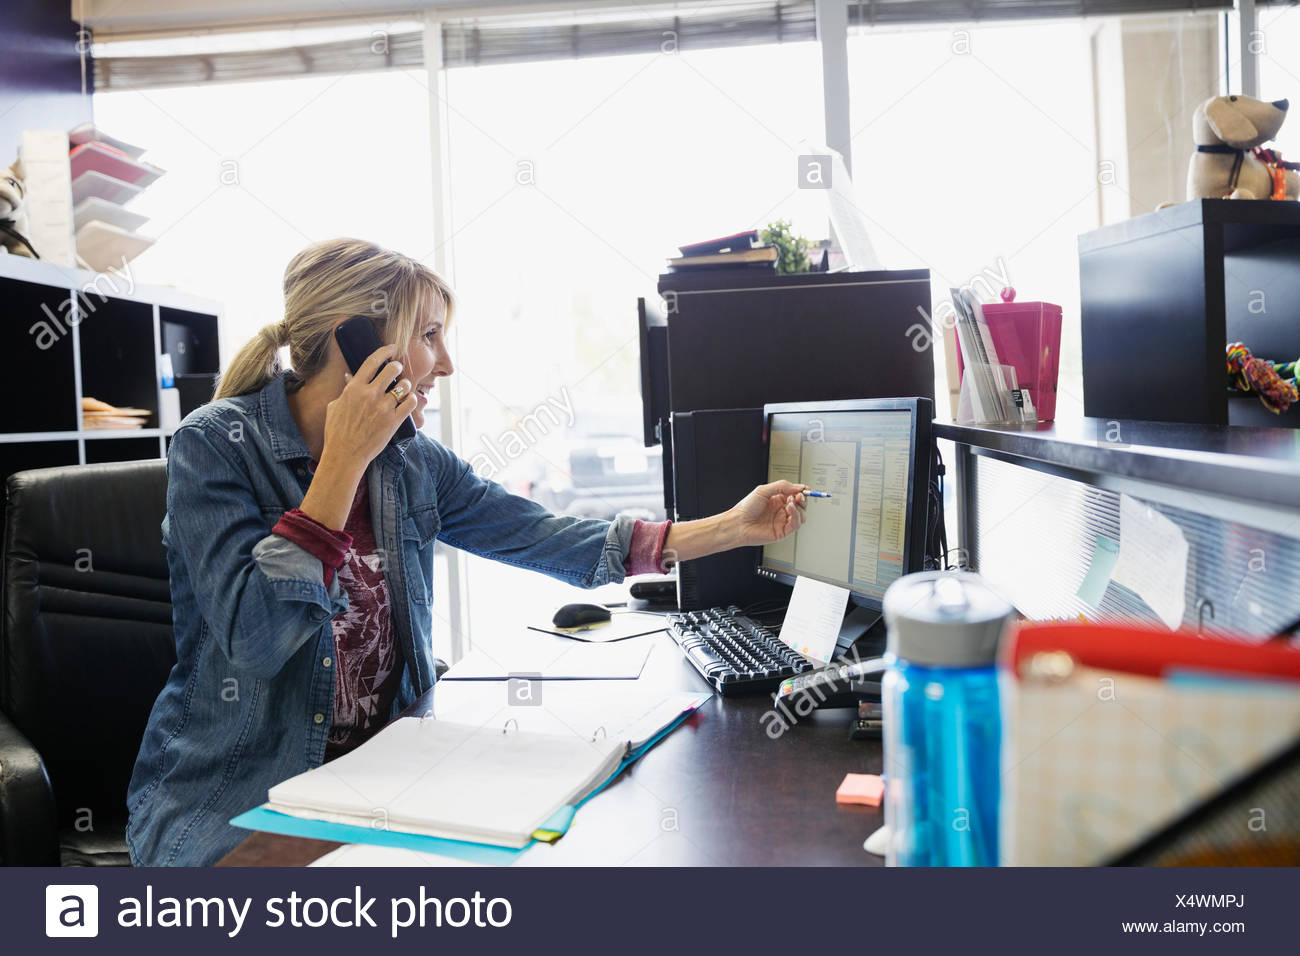 Dog daycare owner scheduling appointment at desk - Stock Image